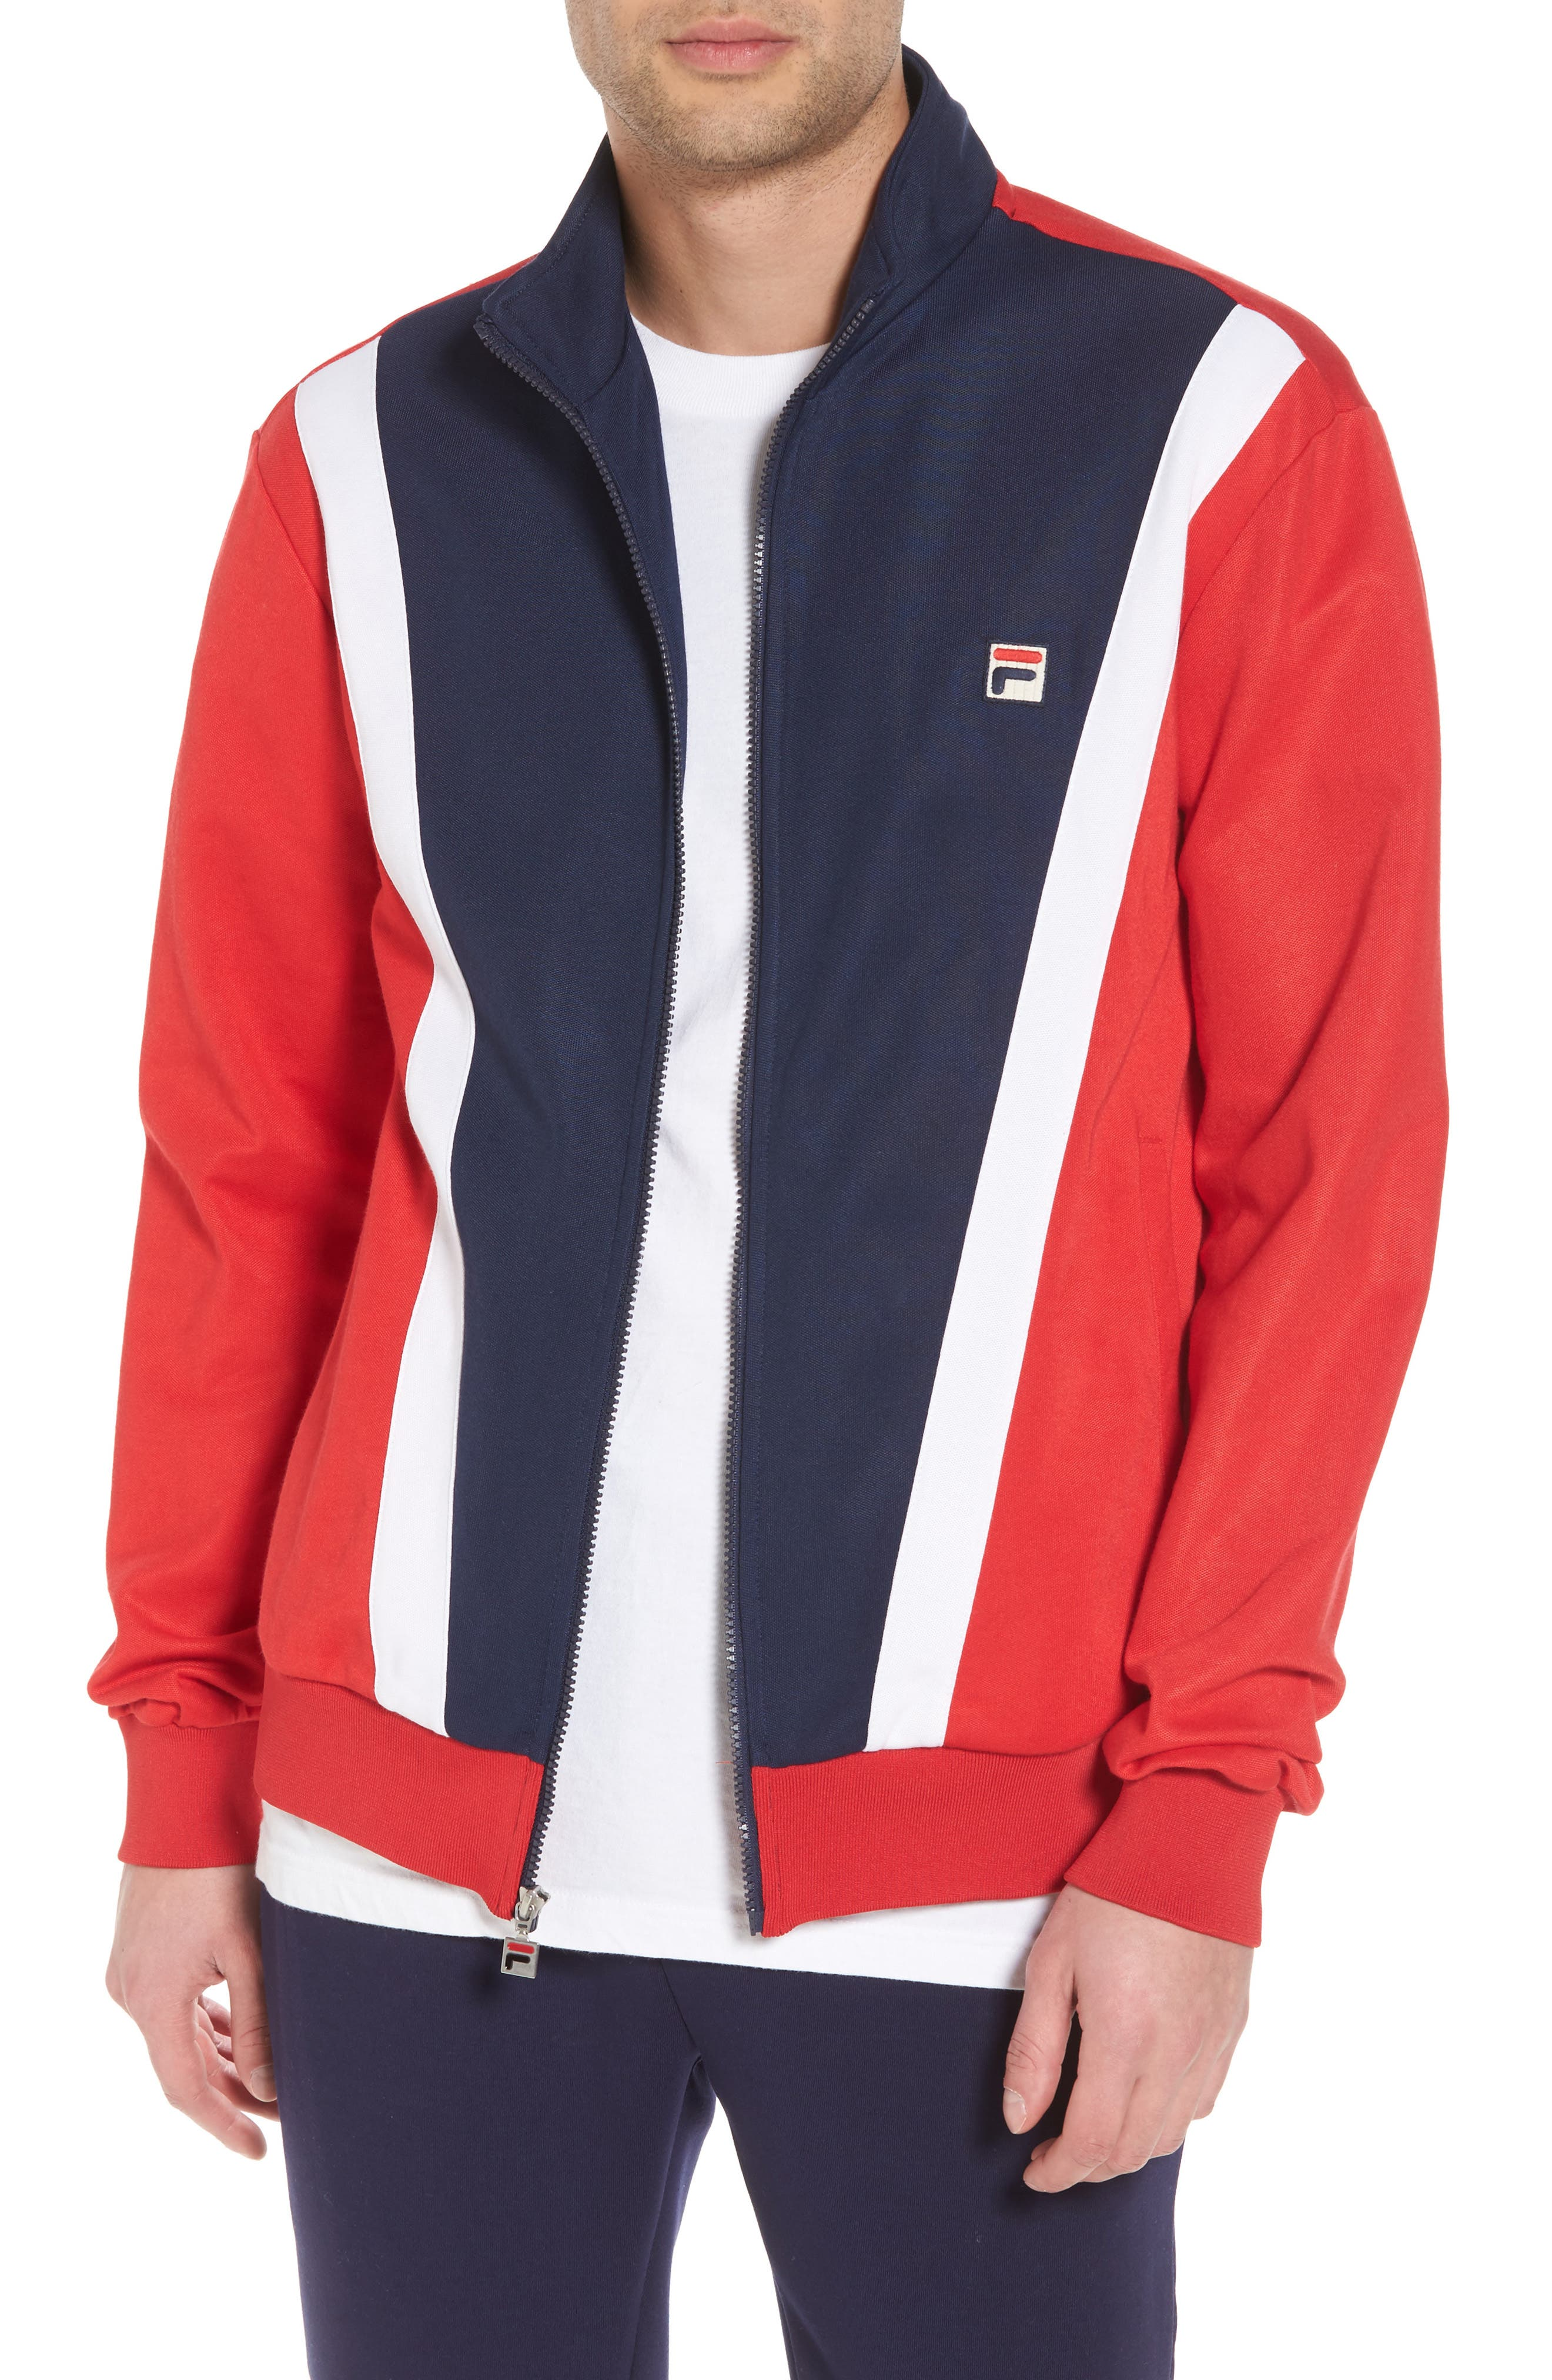 Grosso Jacket,                             Main thumbnail 1, color,                             450